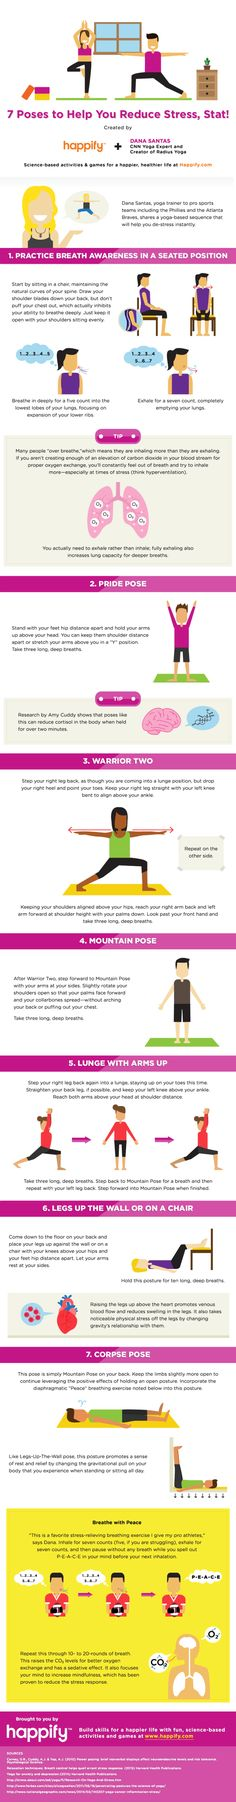 7 Breathing Exercises To Help You Reduce Stress (Infographic) #stress #health